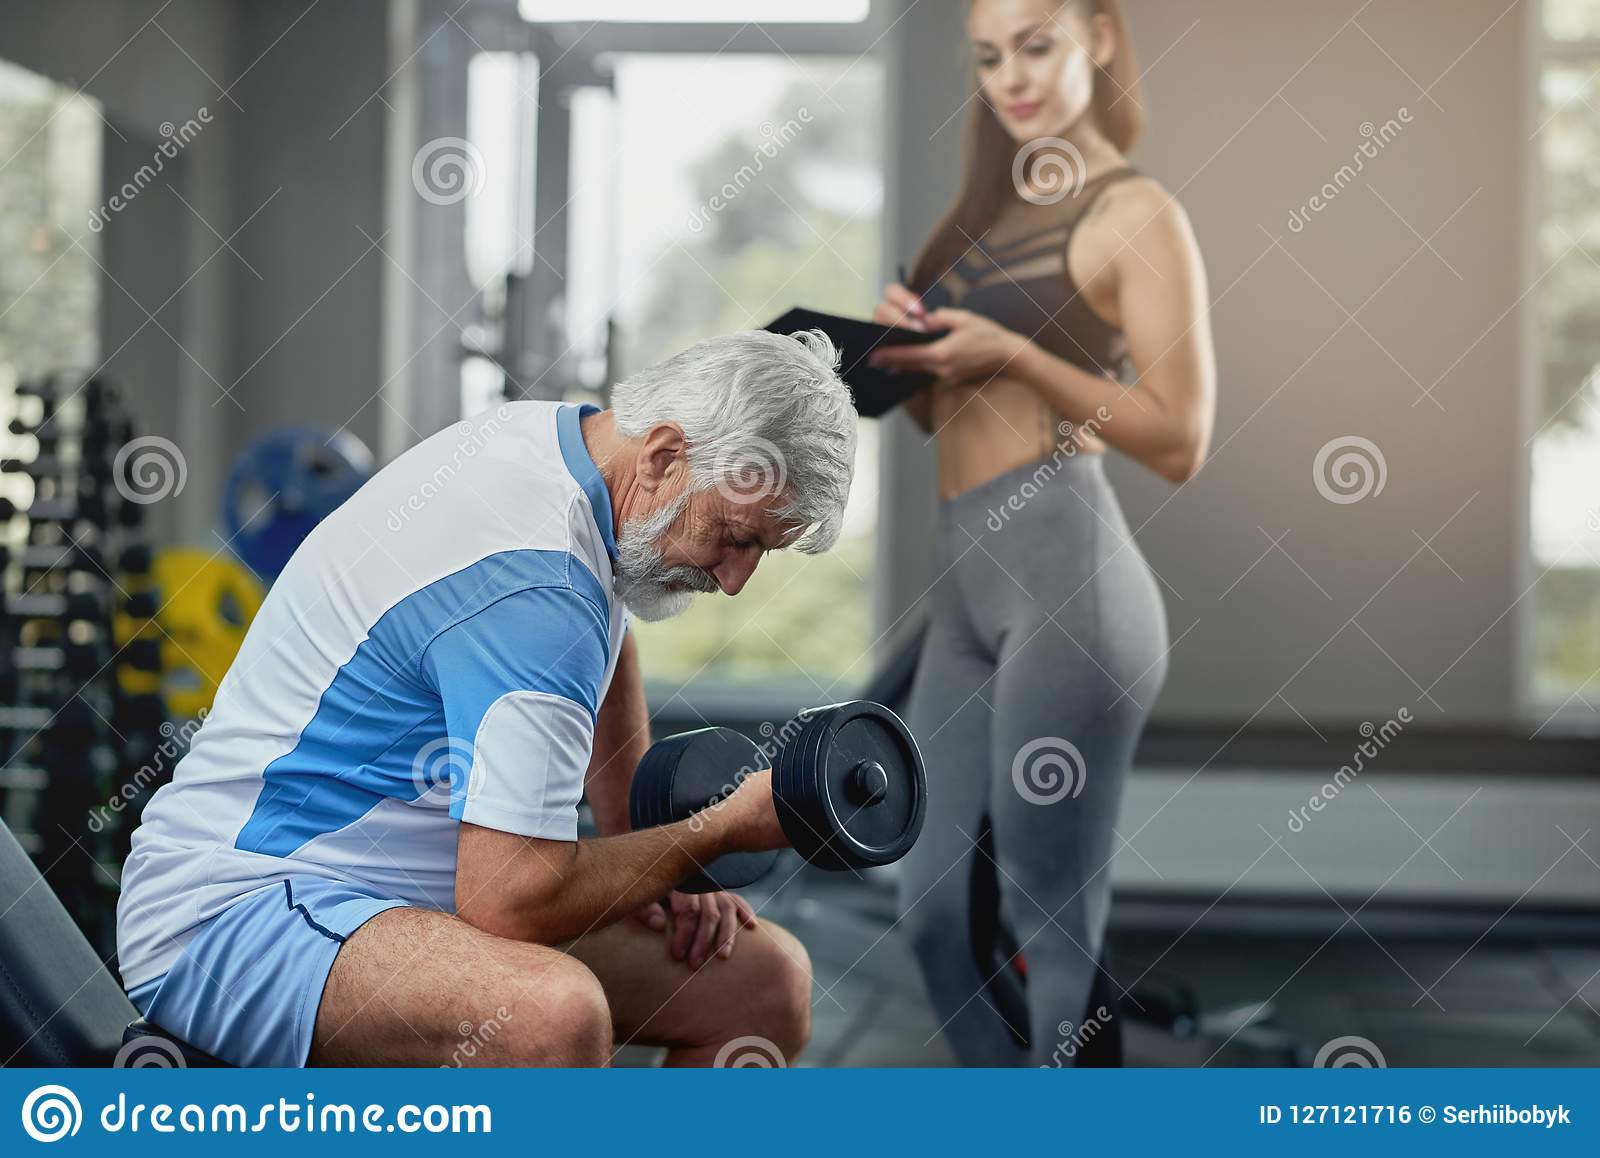 Young Hot Female Personal Trainer Supporting Senior Gray Man